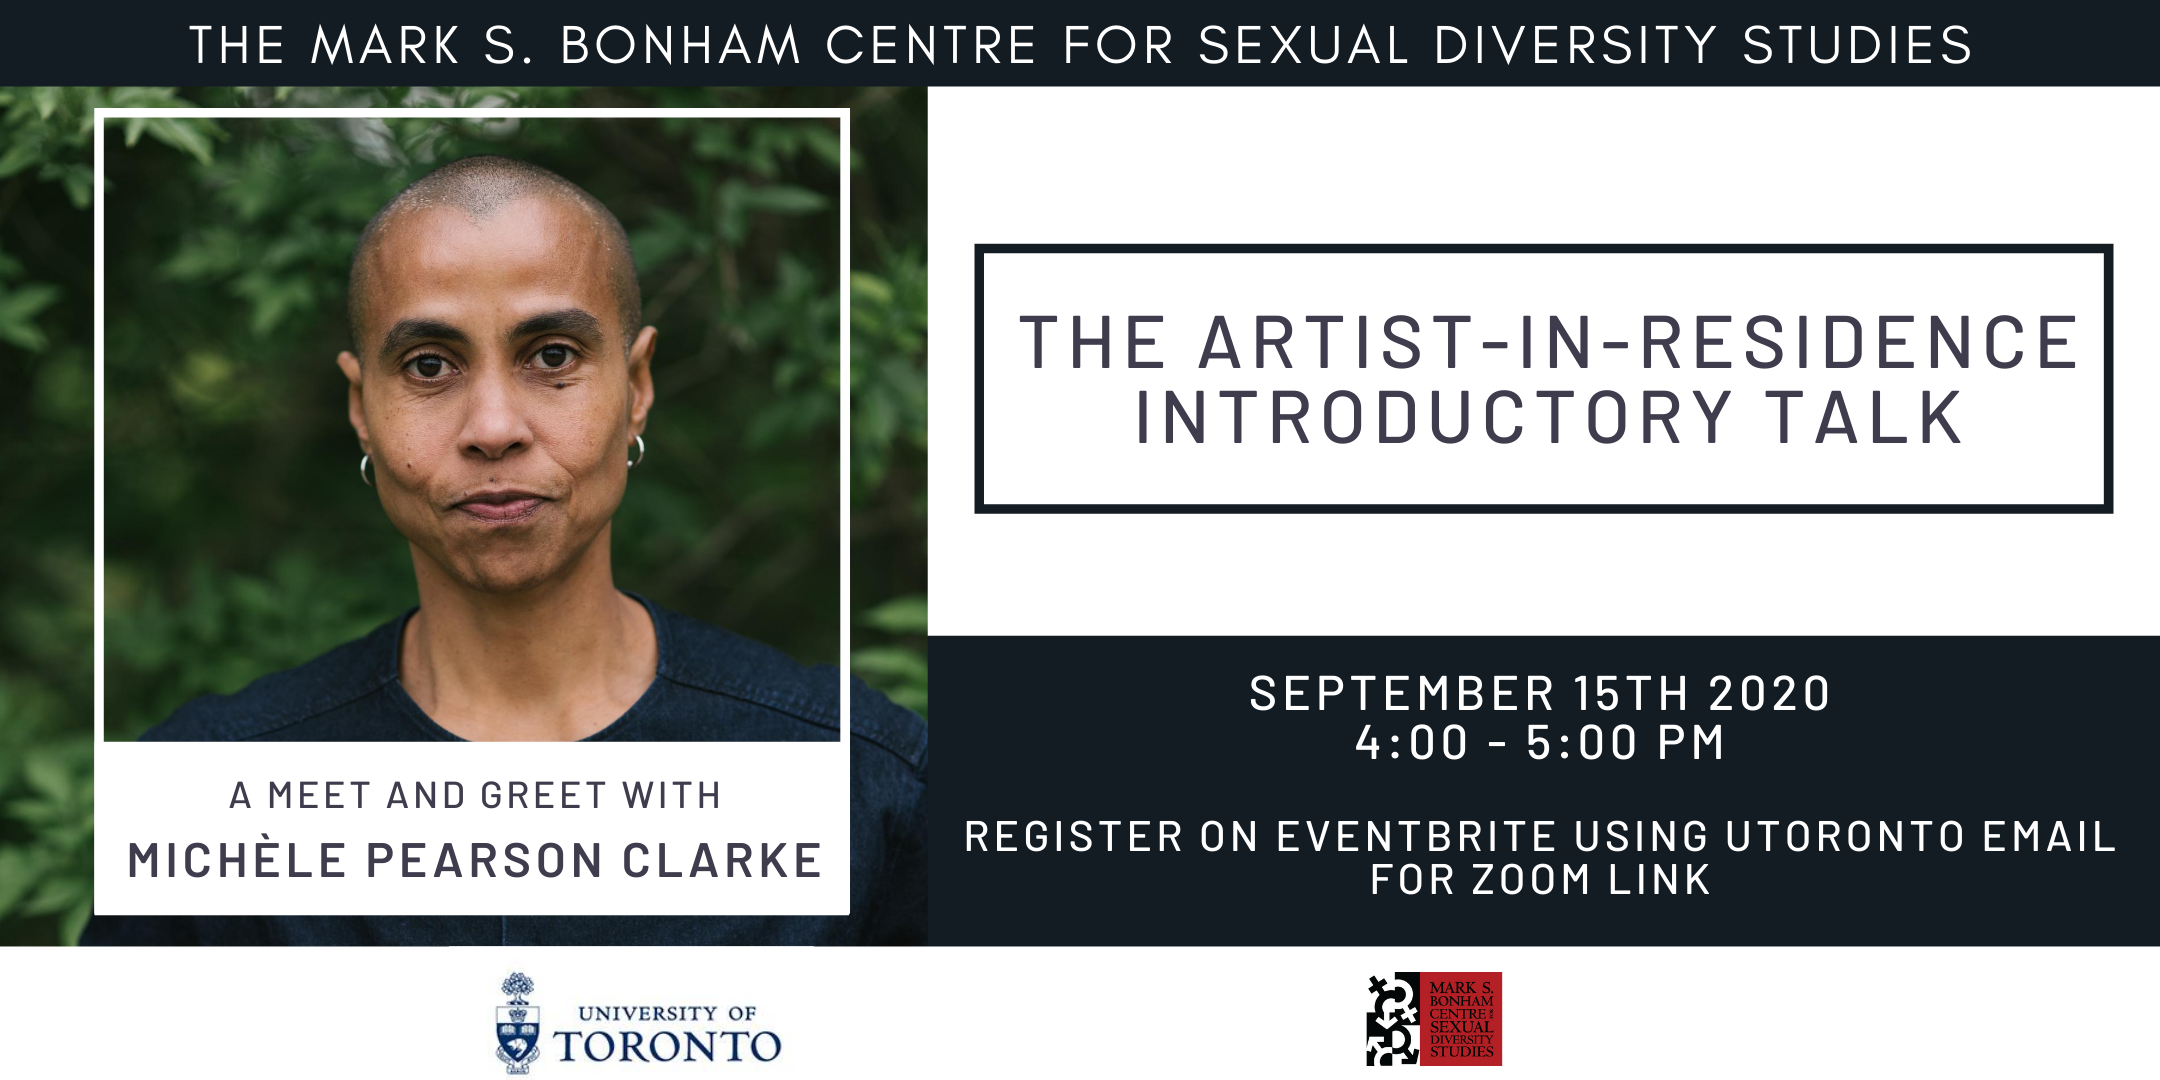 Artist-in-Residence Talk: Meet-And-Greet with Michèle Pearson Clarke